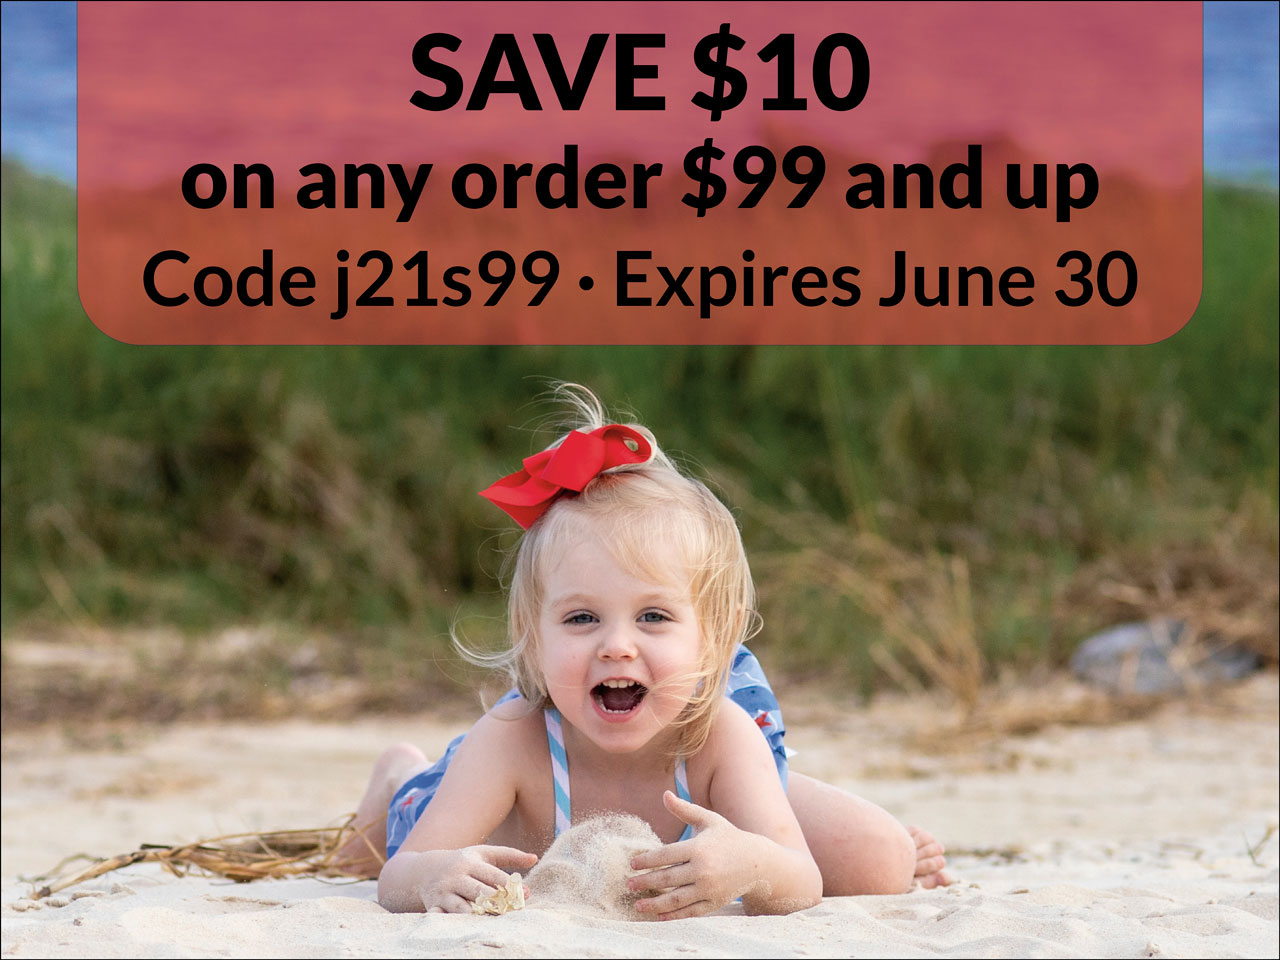 Save $10 on your Midwifery Today order